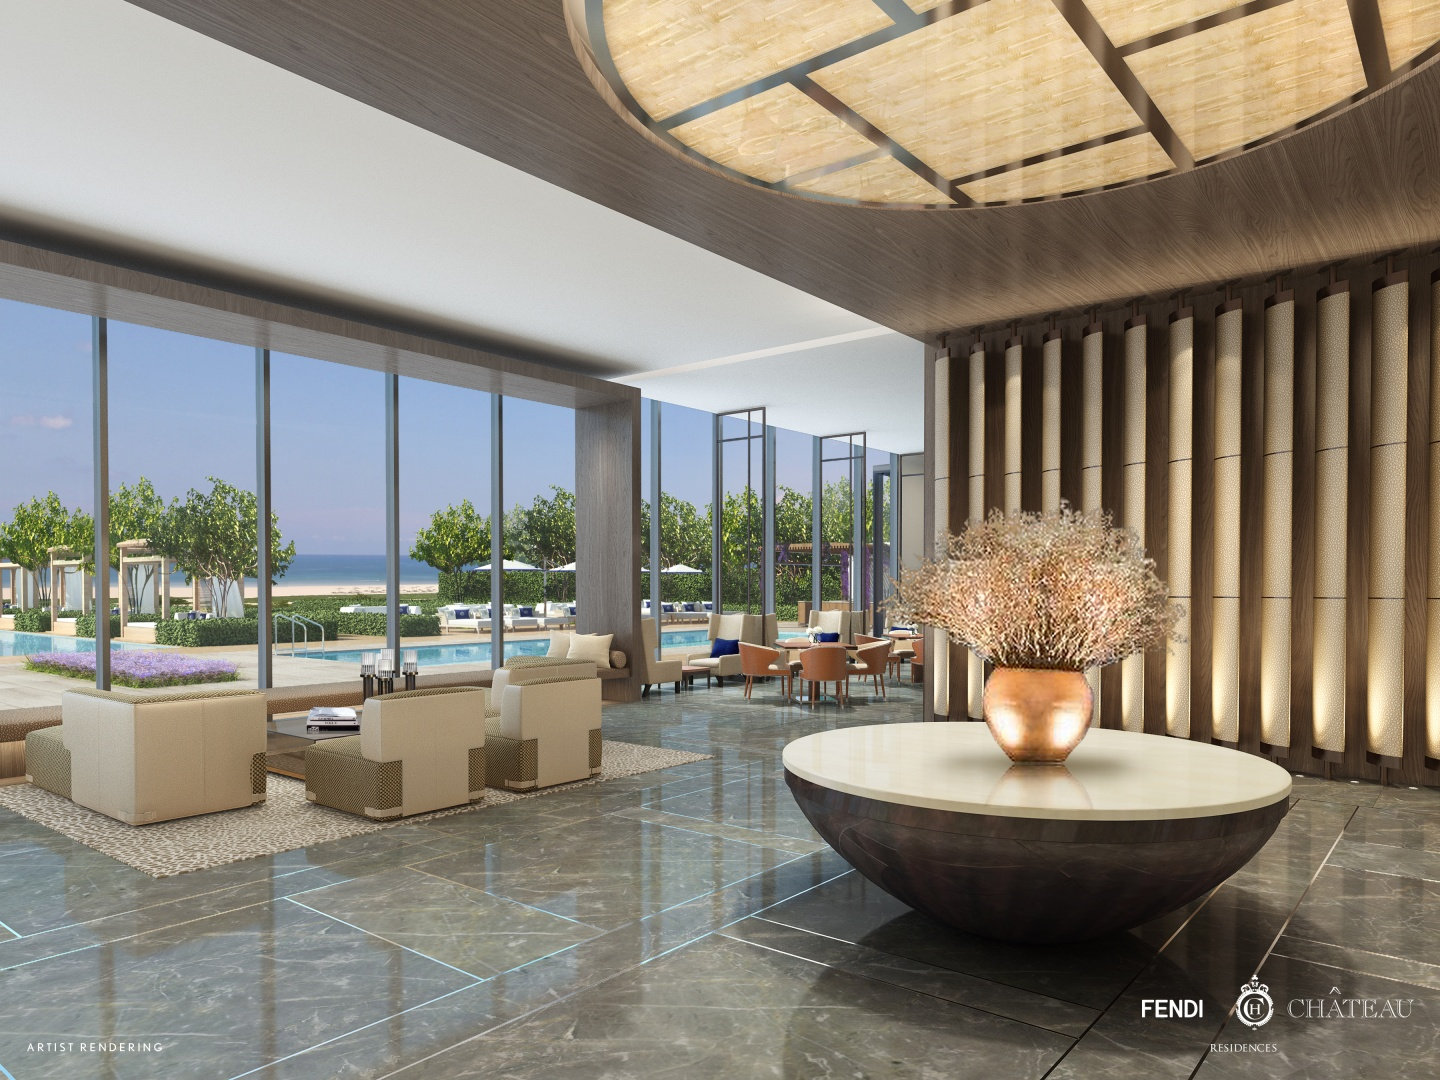 Fendi Chateau Residences Renderings